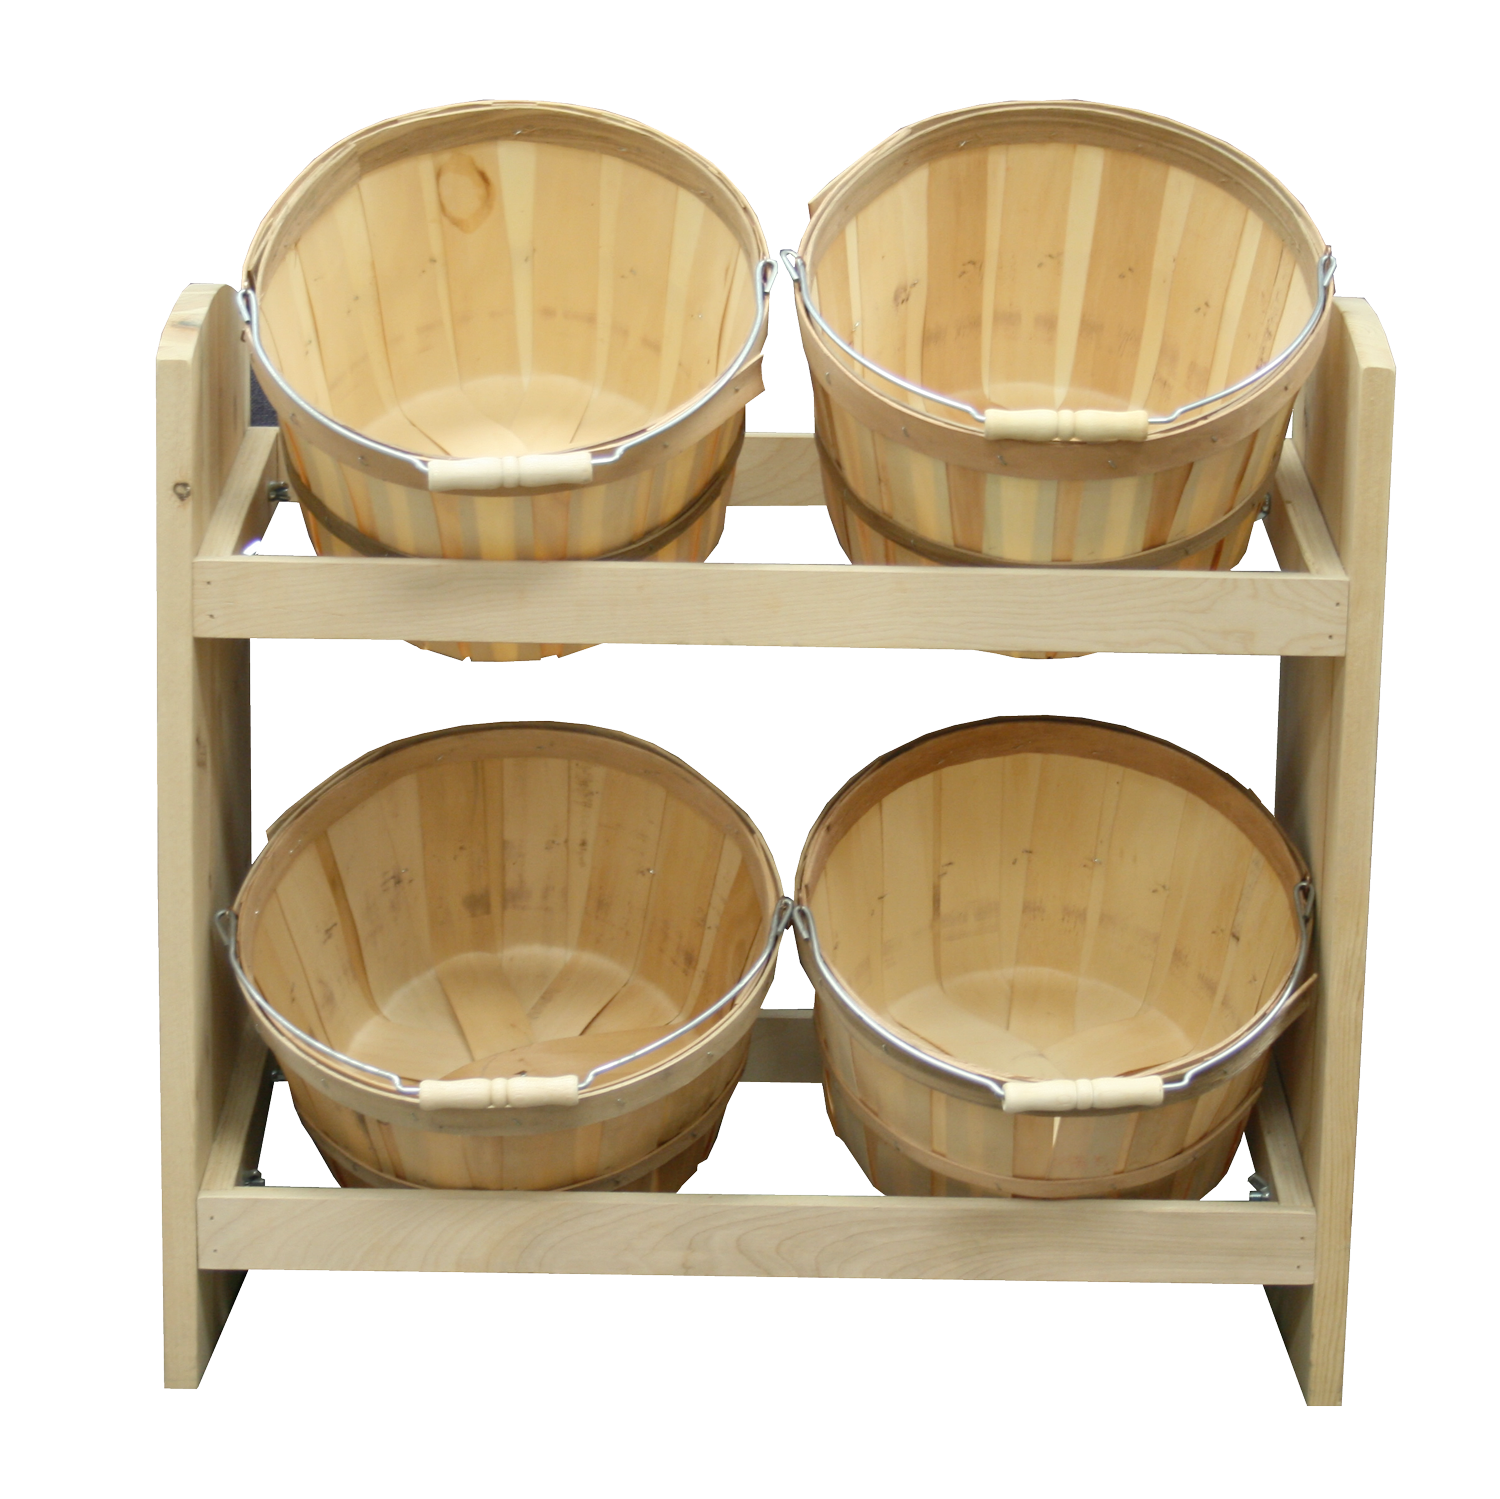 Retail Wood Baskets, Crates & Display Stands